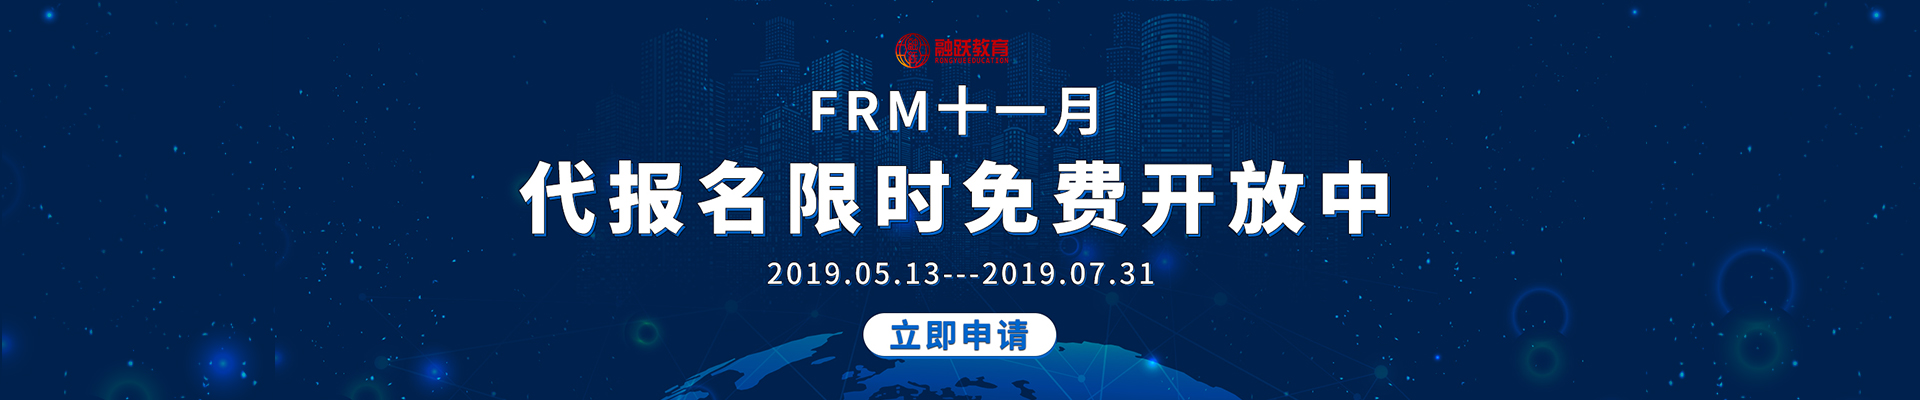 FRM代报名